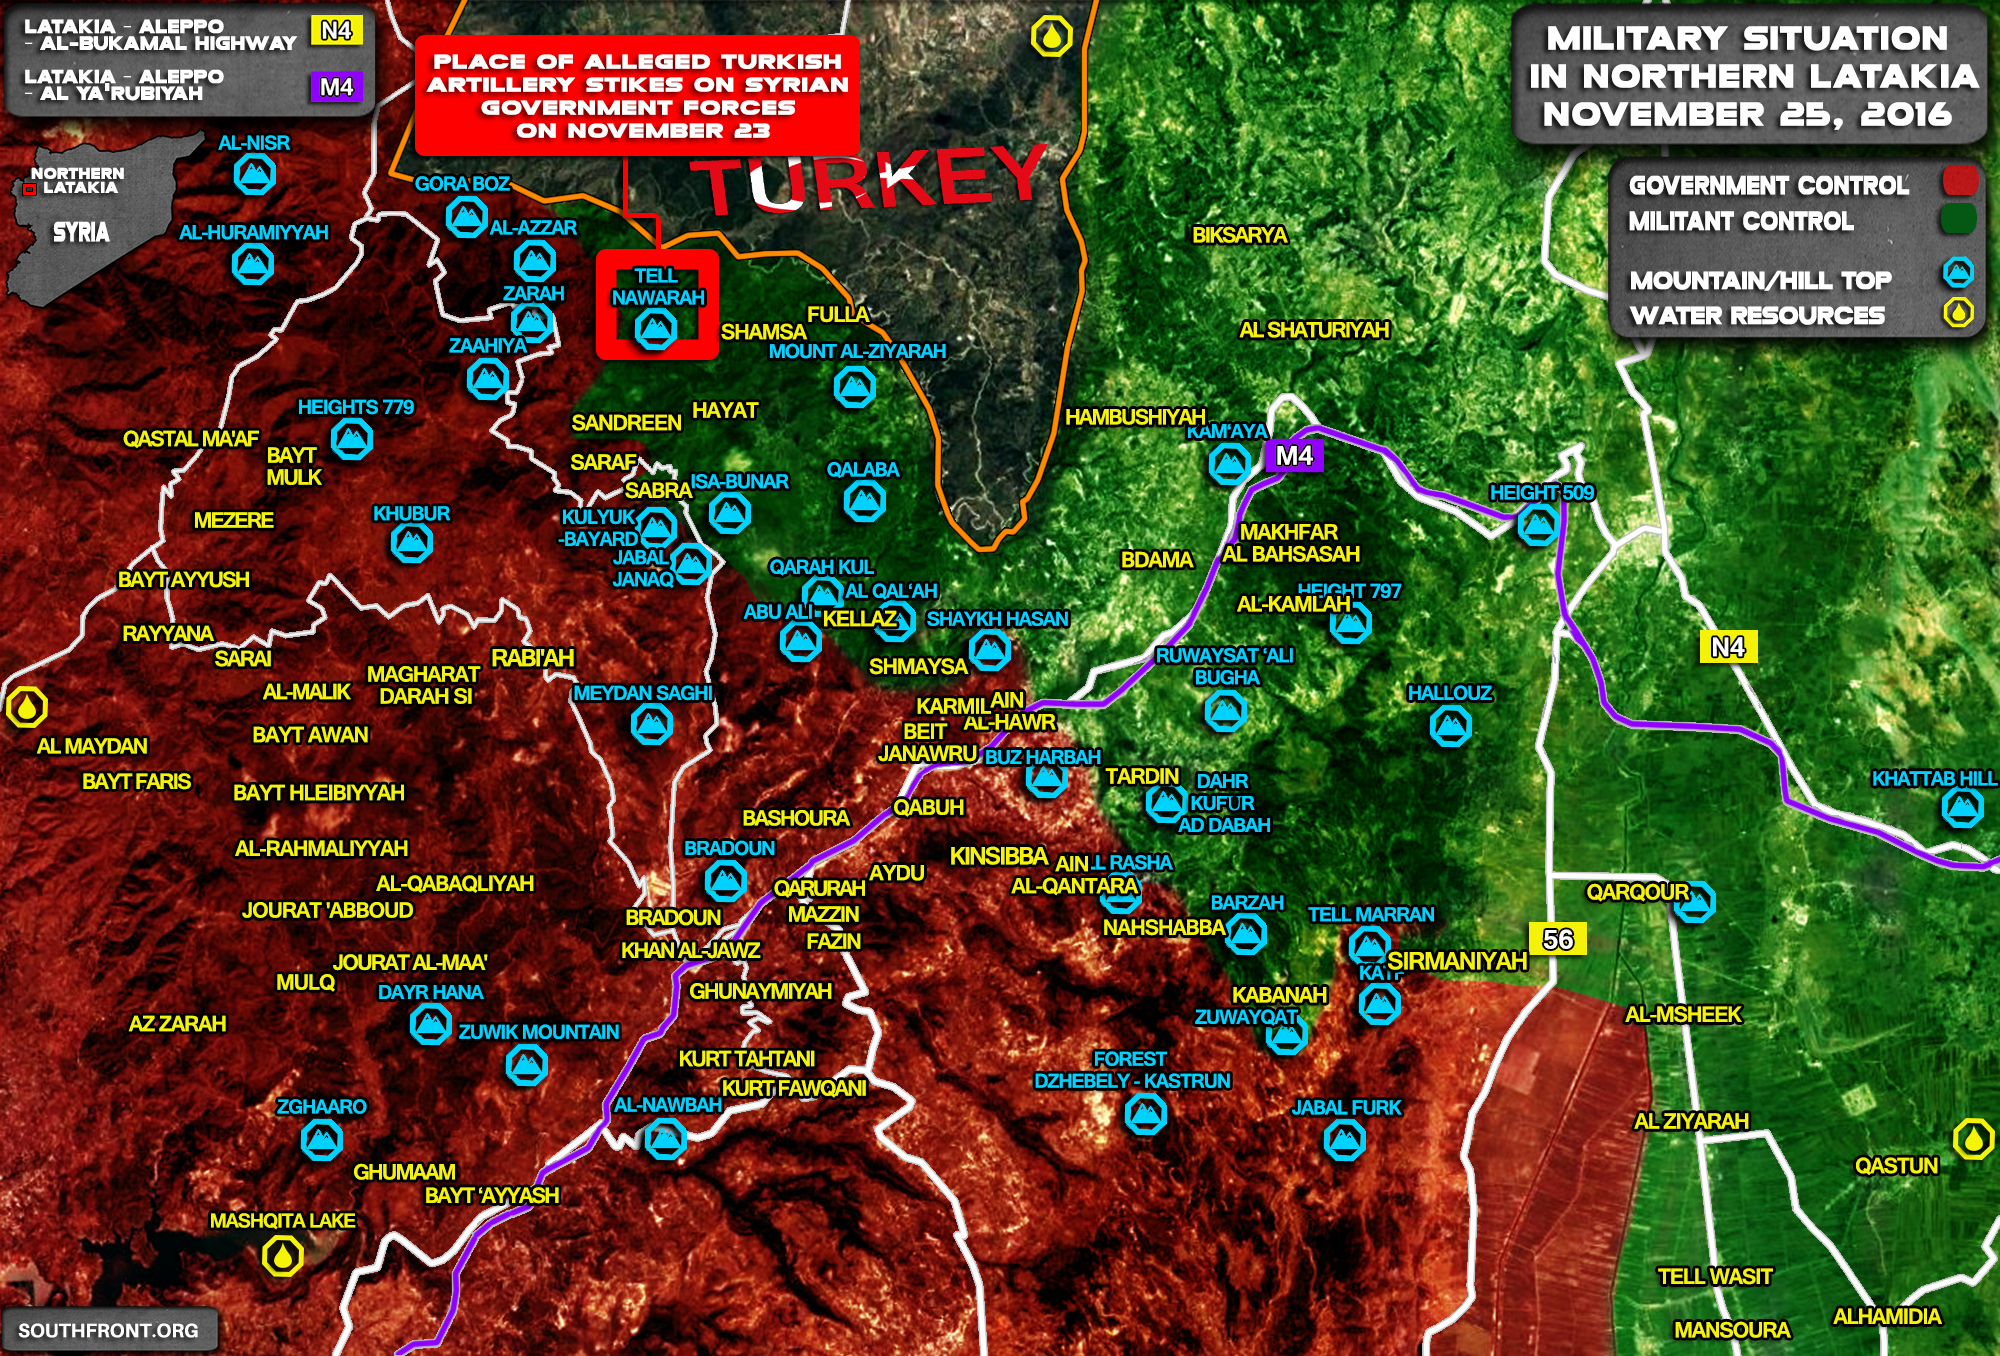 Syria Map Update: Military Situation in Northern Latakia on November 25, 2016